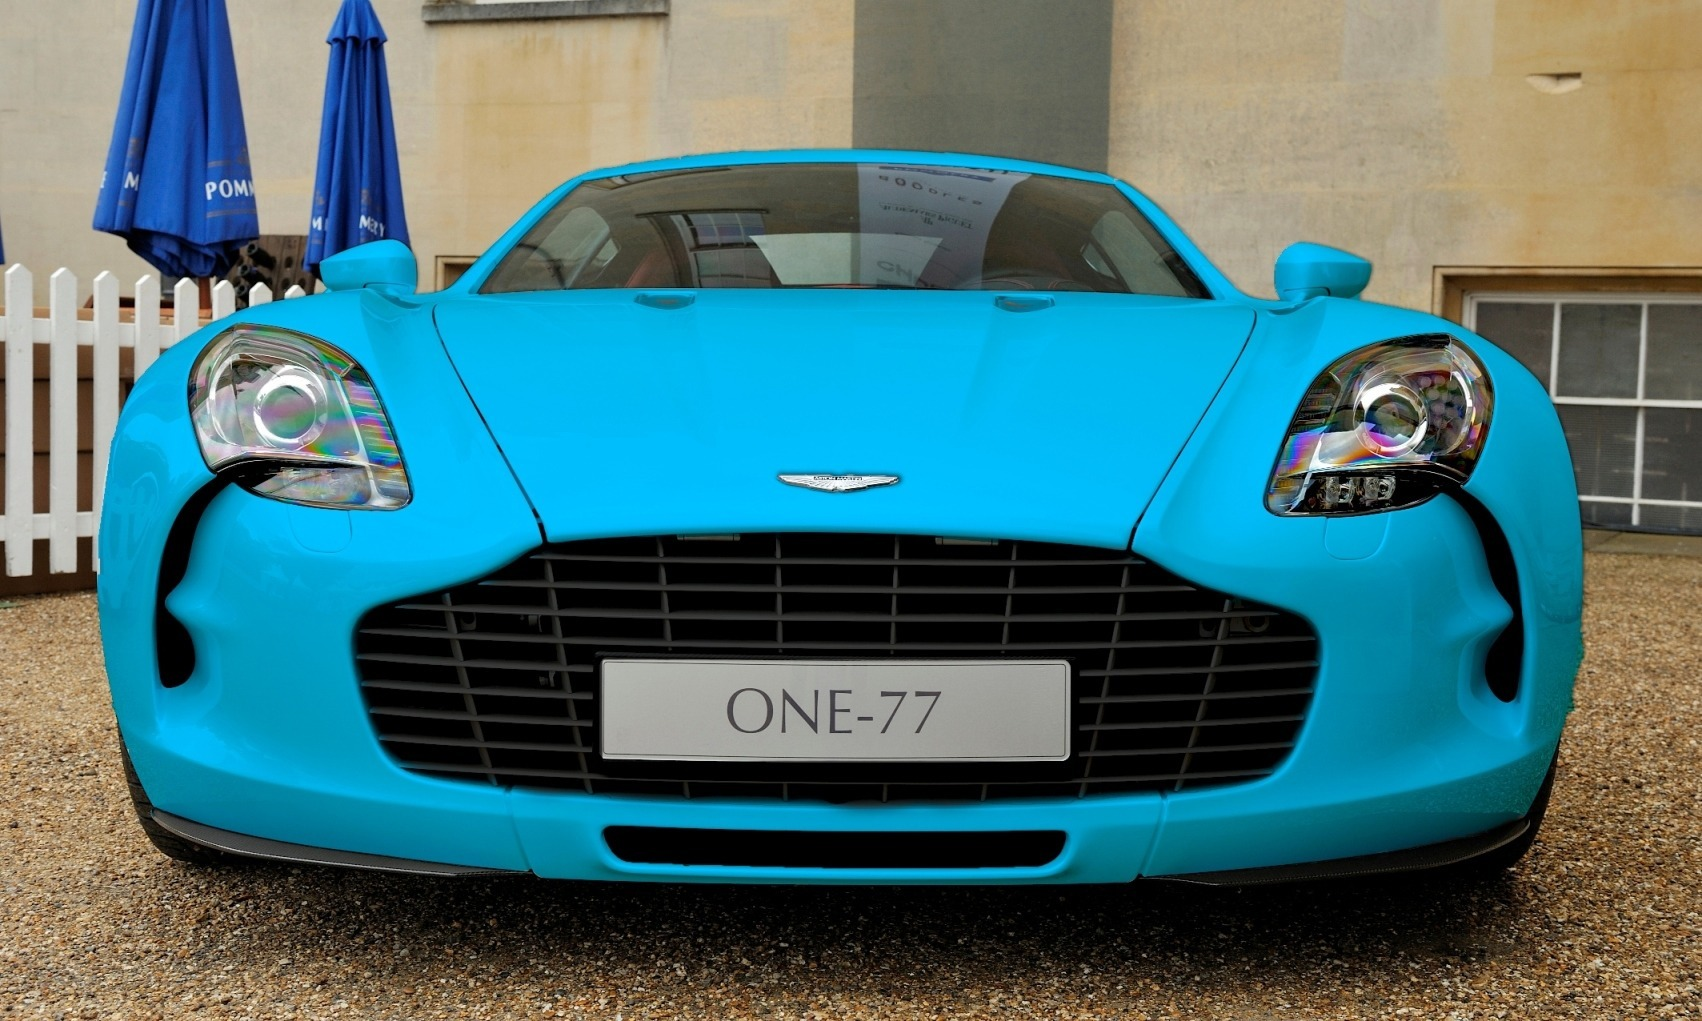 aston martin one 77 baby blue. click to open largest resolution image aston martin one 77 baby blue m